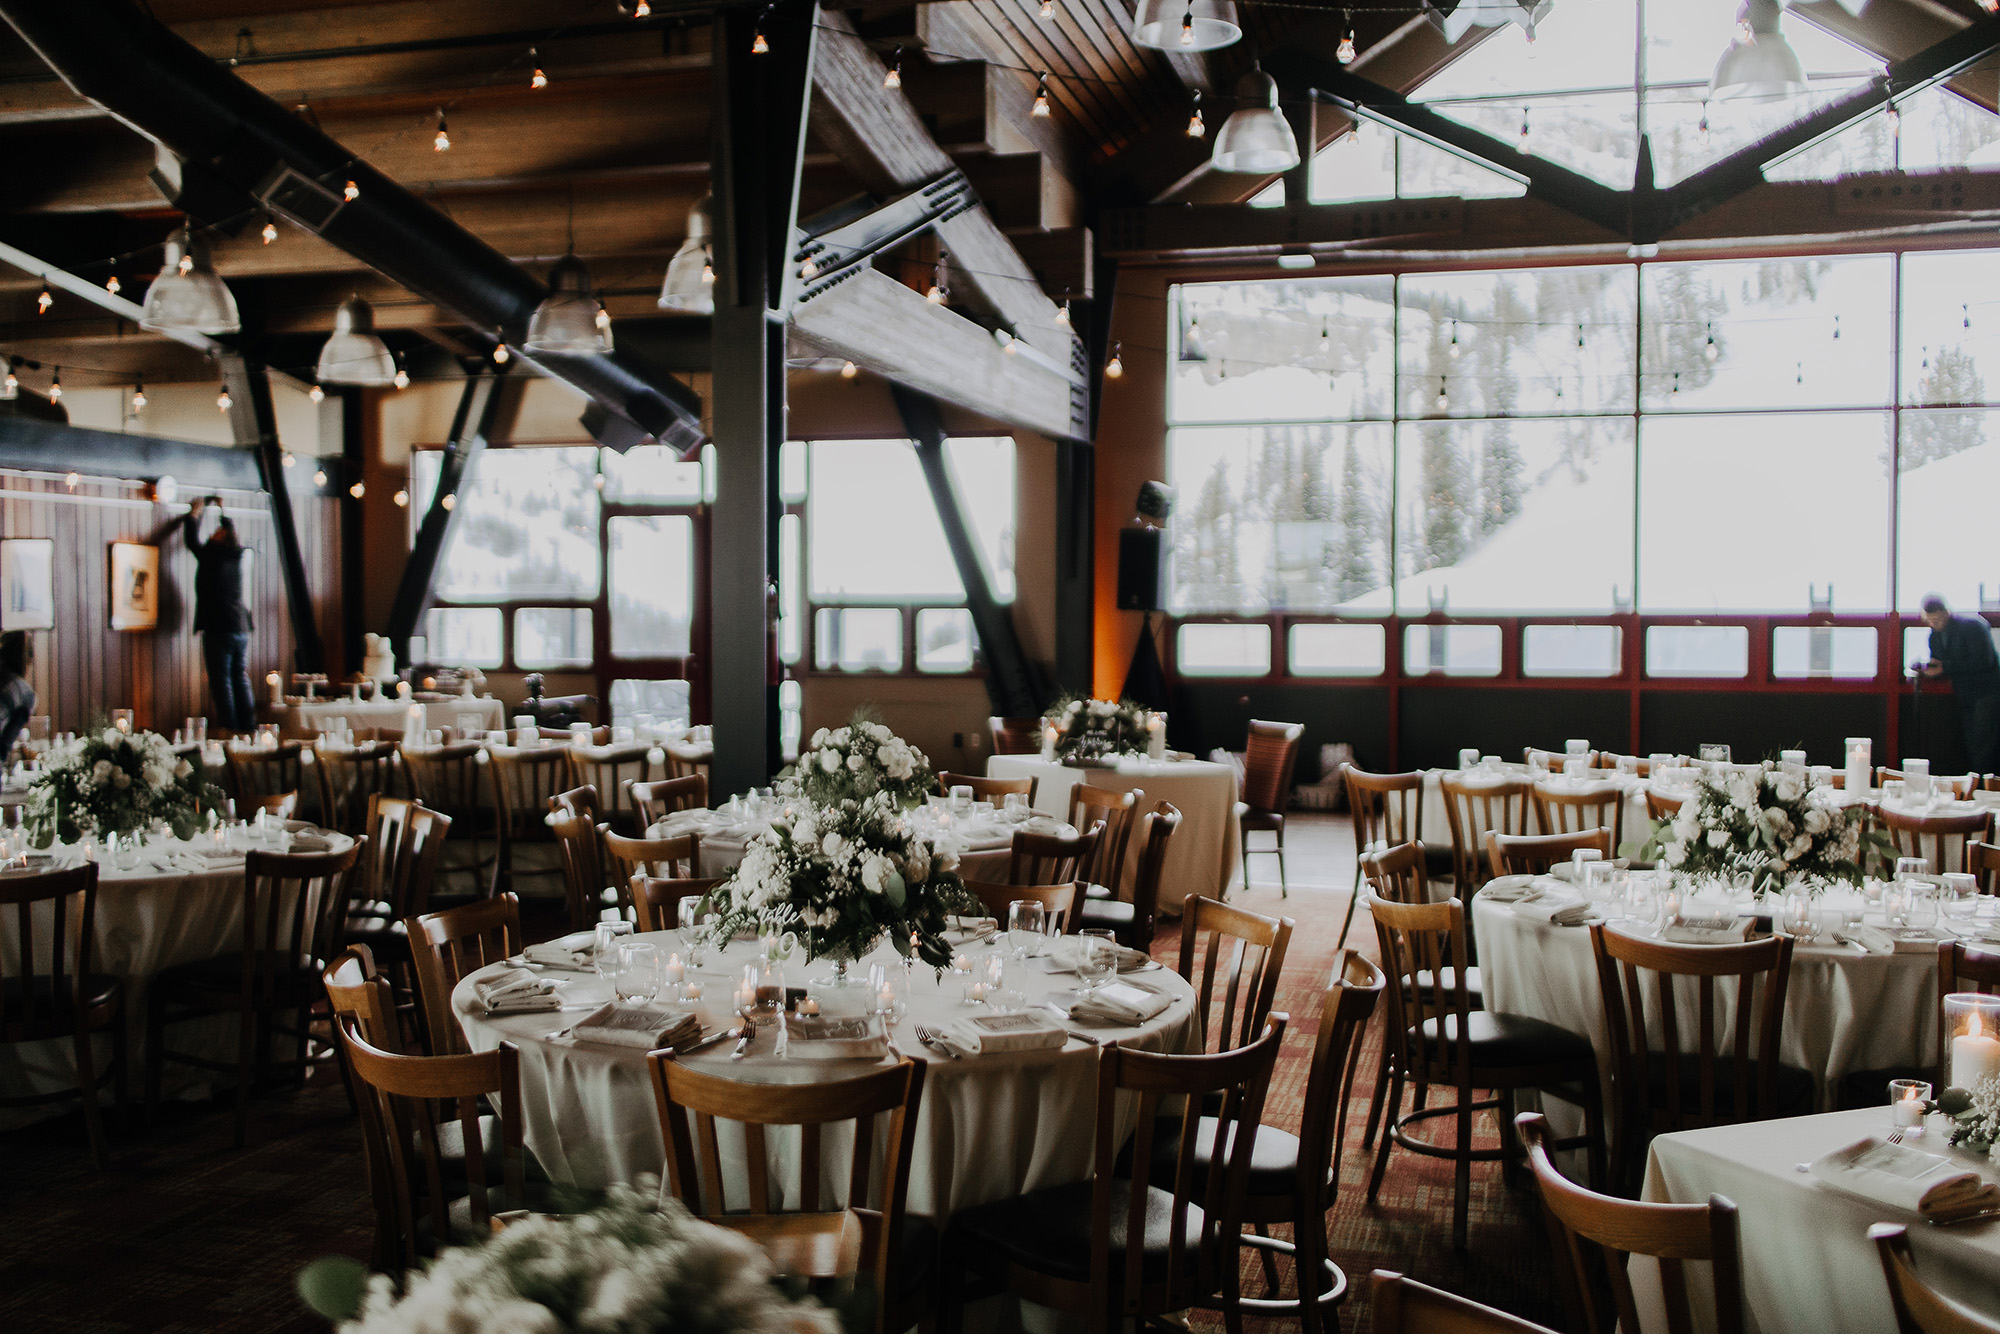 Trey Norris Andrea Geubelle Jackson Hole Wyoming Wedding PhotographerCaldera House Teton Village Ski Resort Wyoming Destination Traveling Wedding Photography